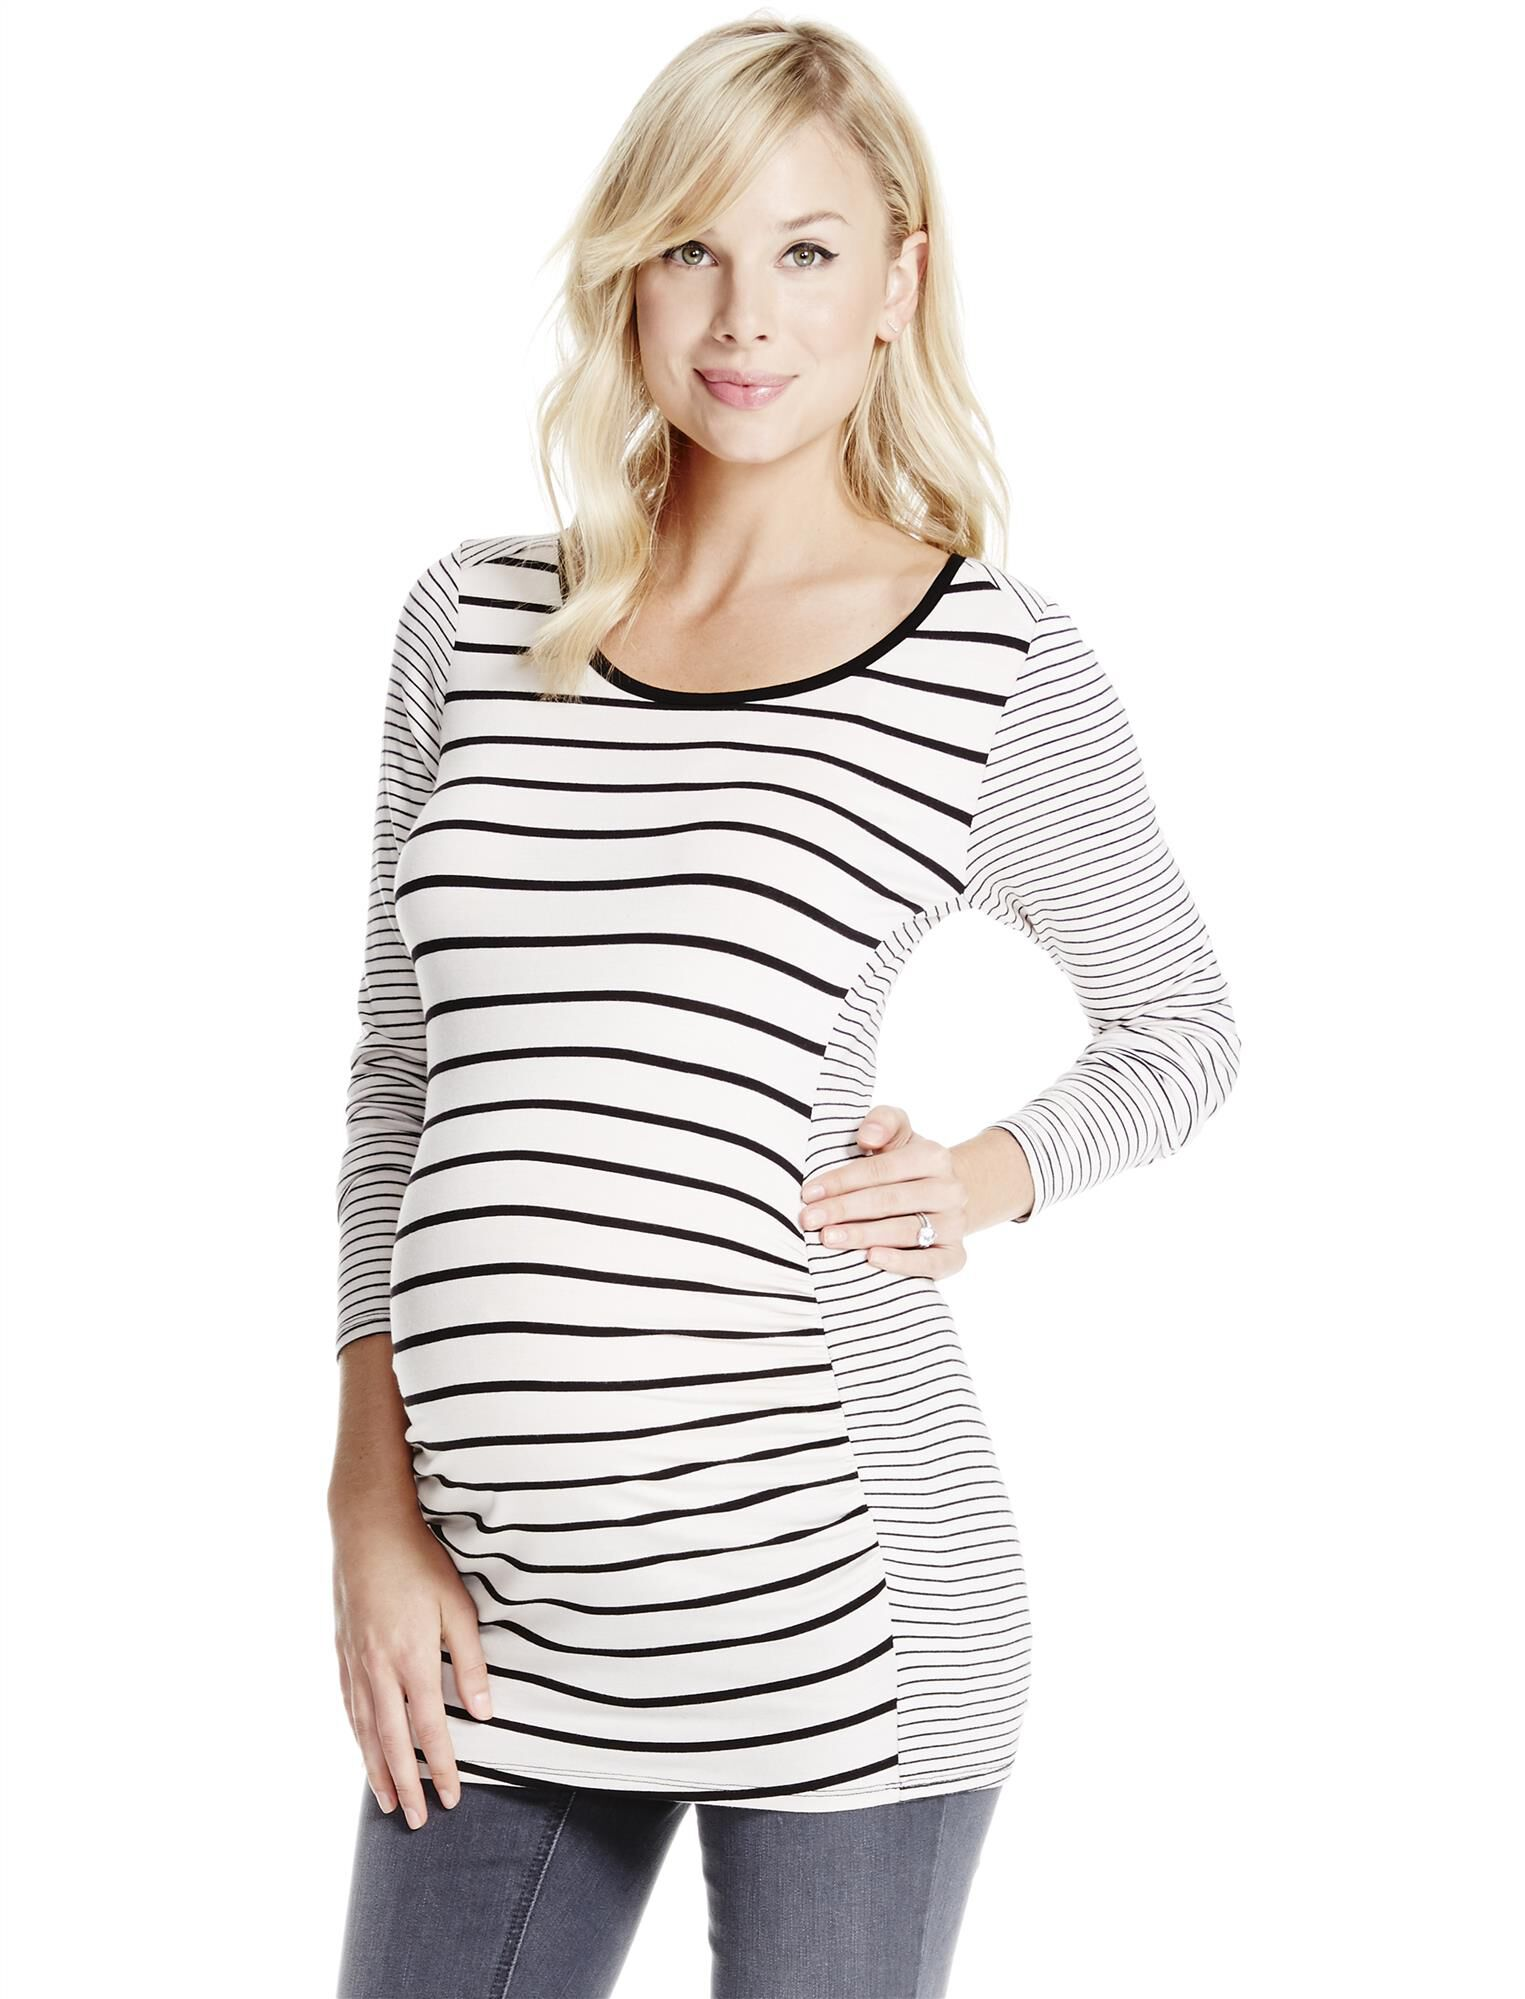 Jessica Simpson Zipper Detail Maternity Top- Black/White